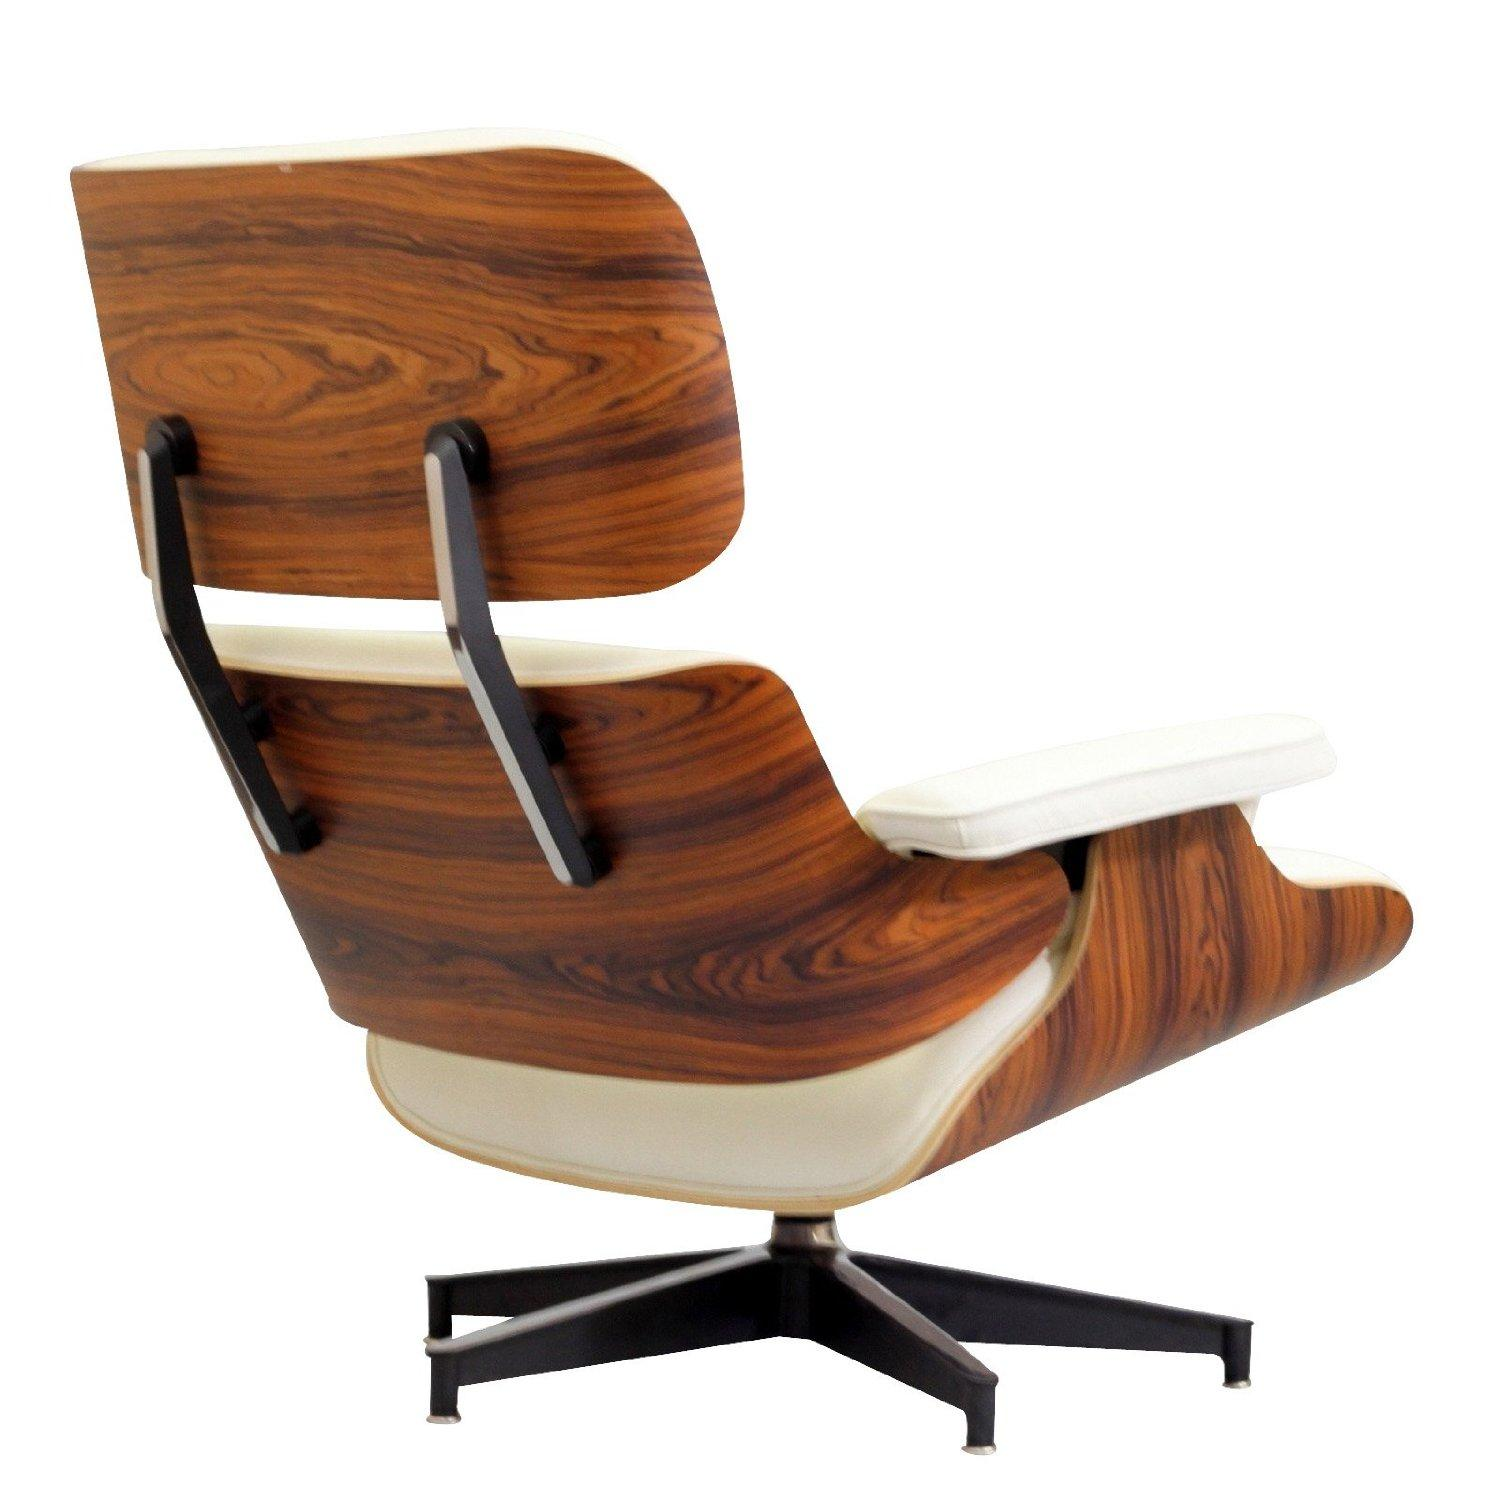 this eames lounge chair and ottoman feature santos palisande